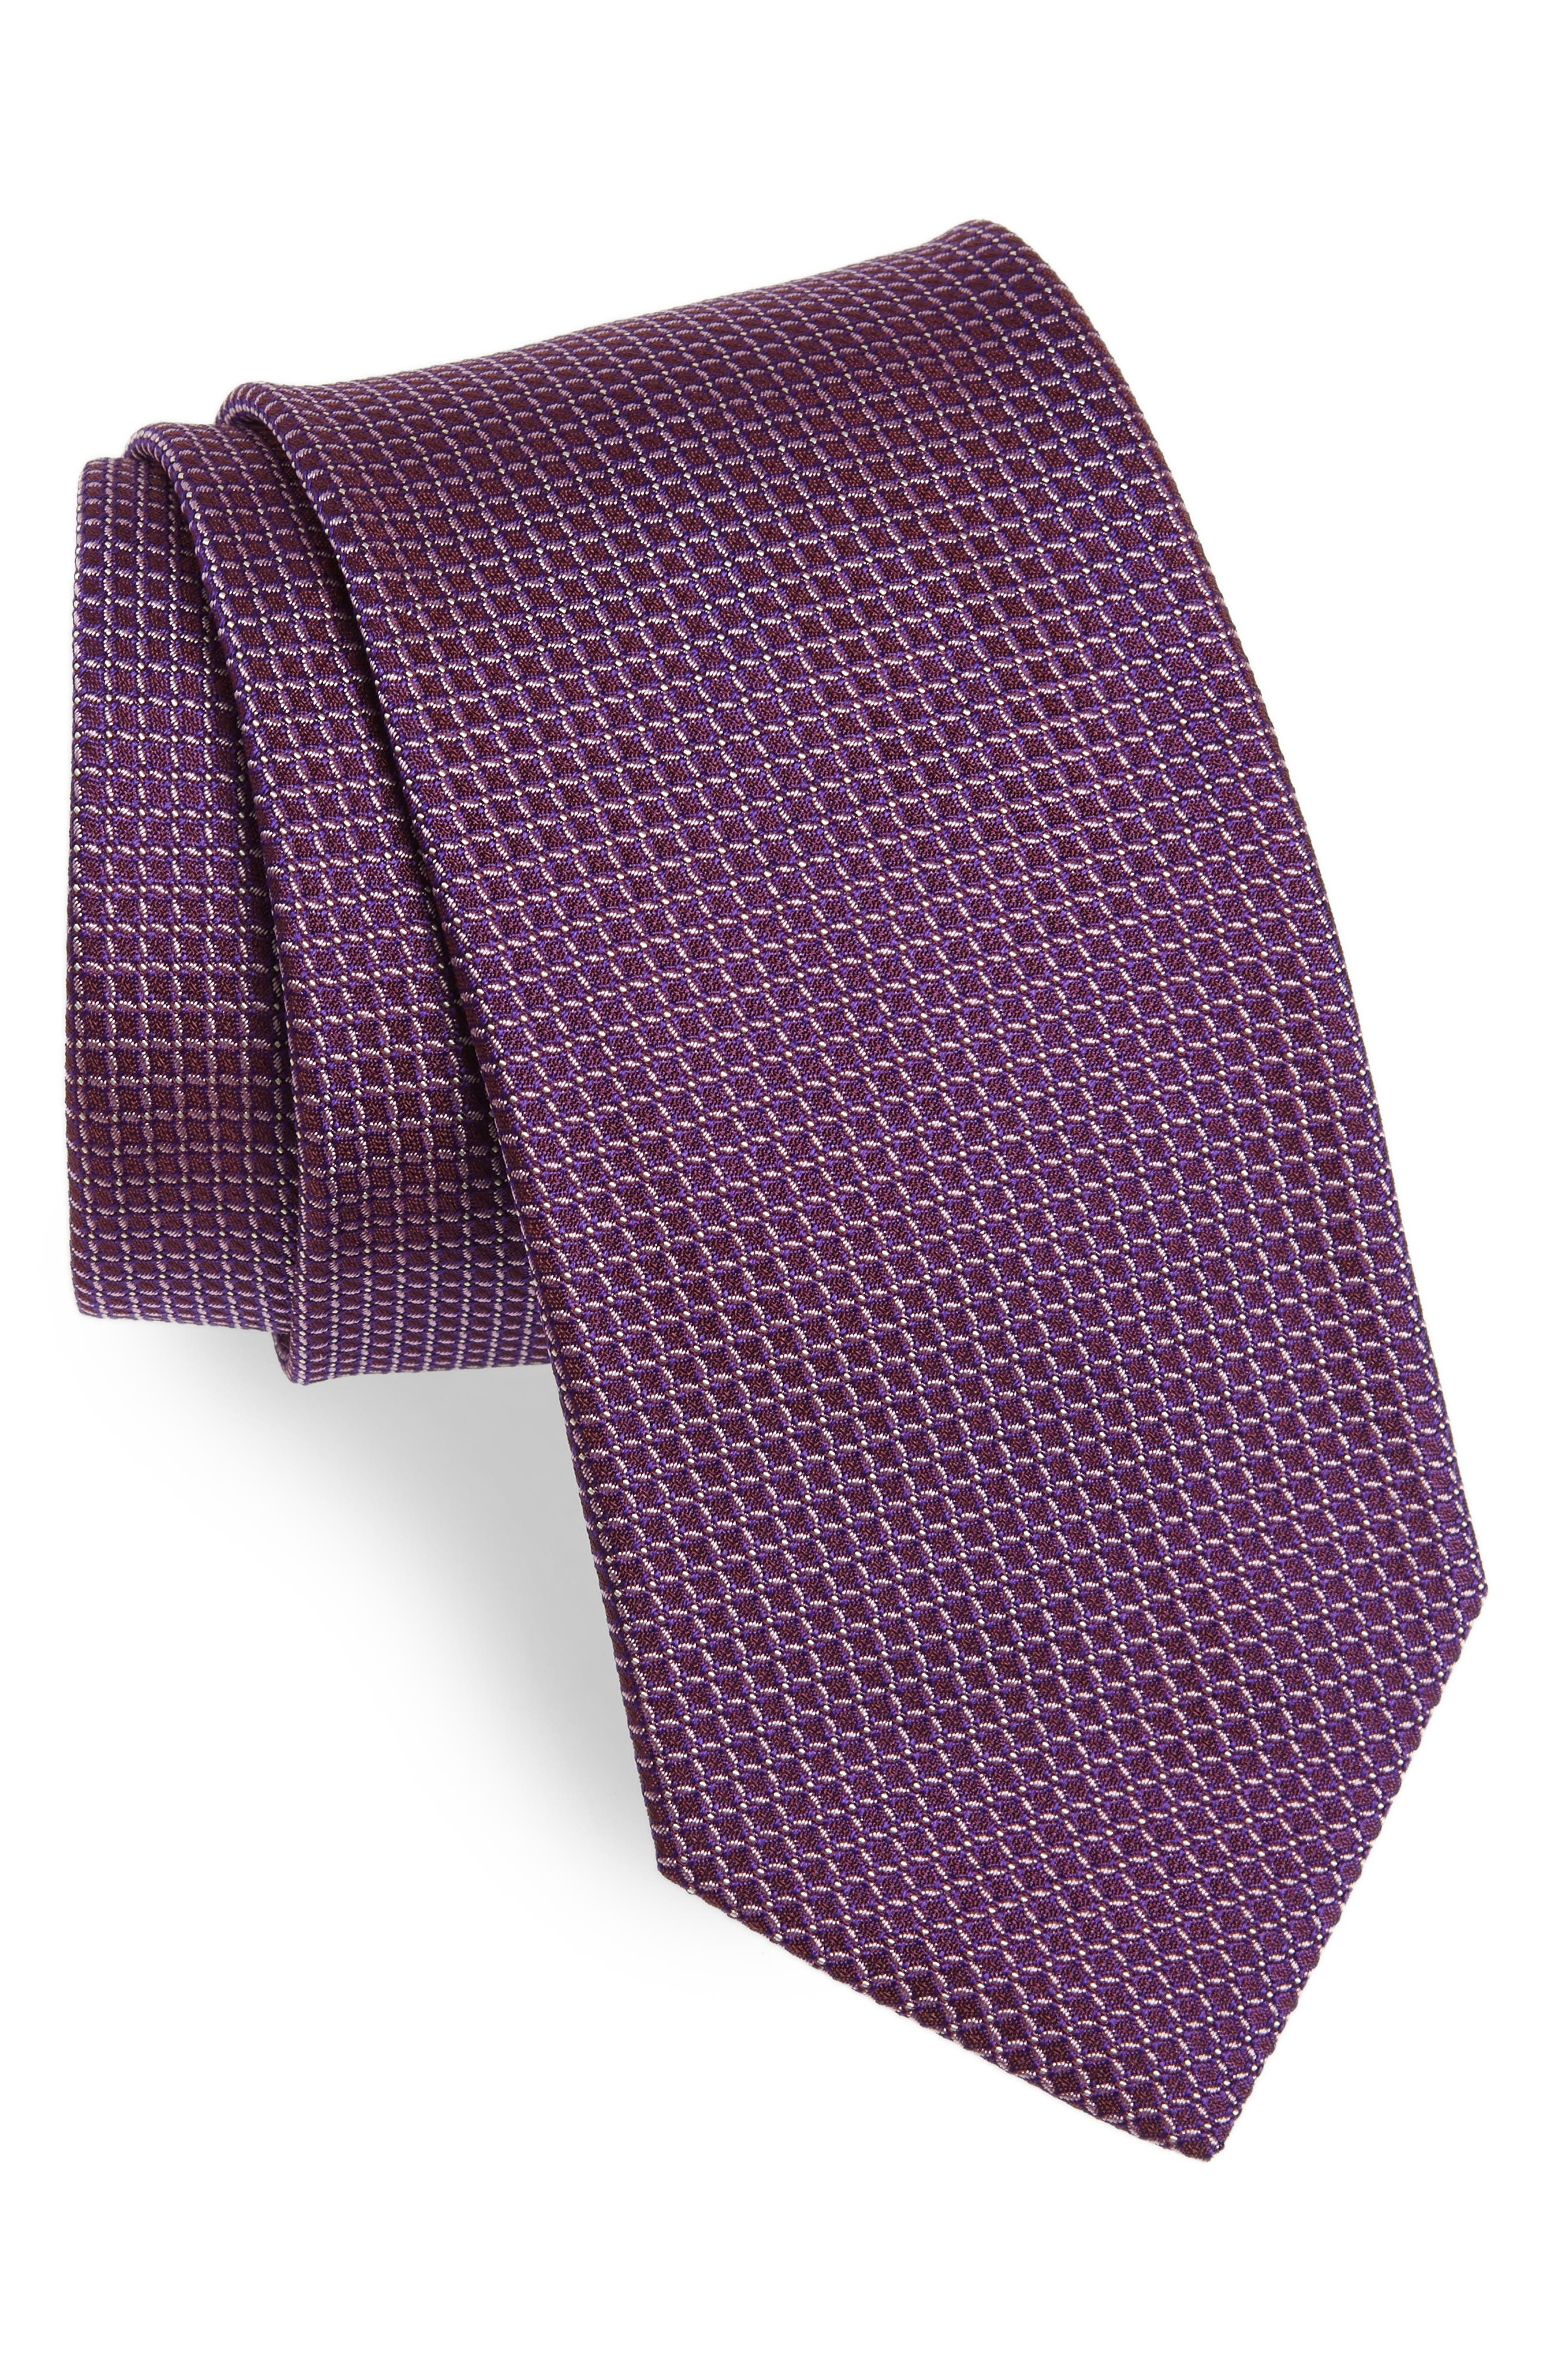 Alternate Image 1 Selected - BOSS Geometric Silk Tie